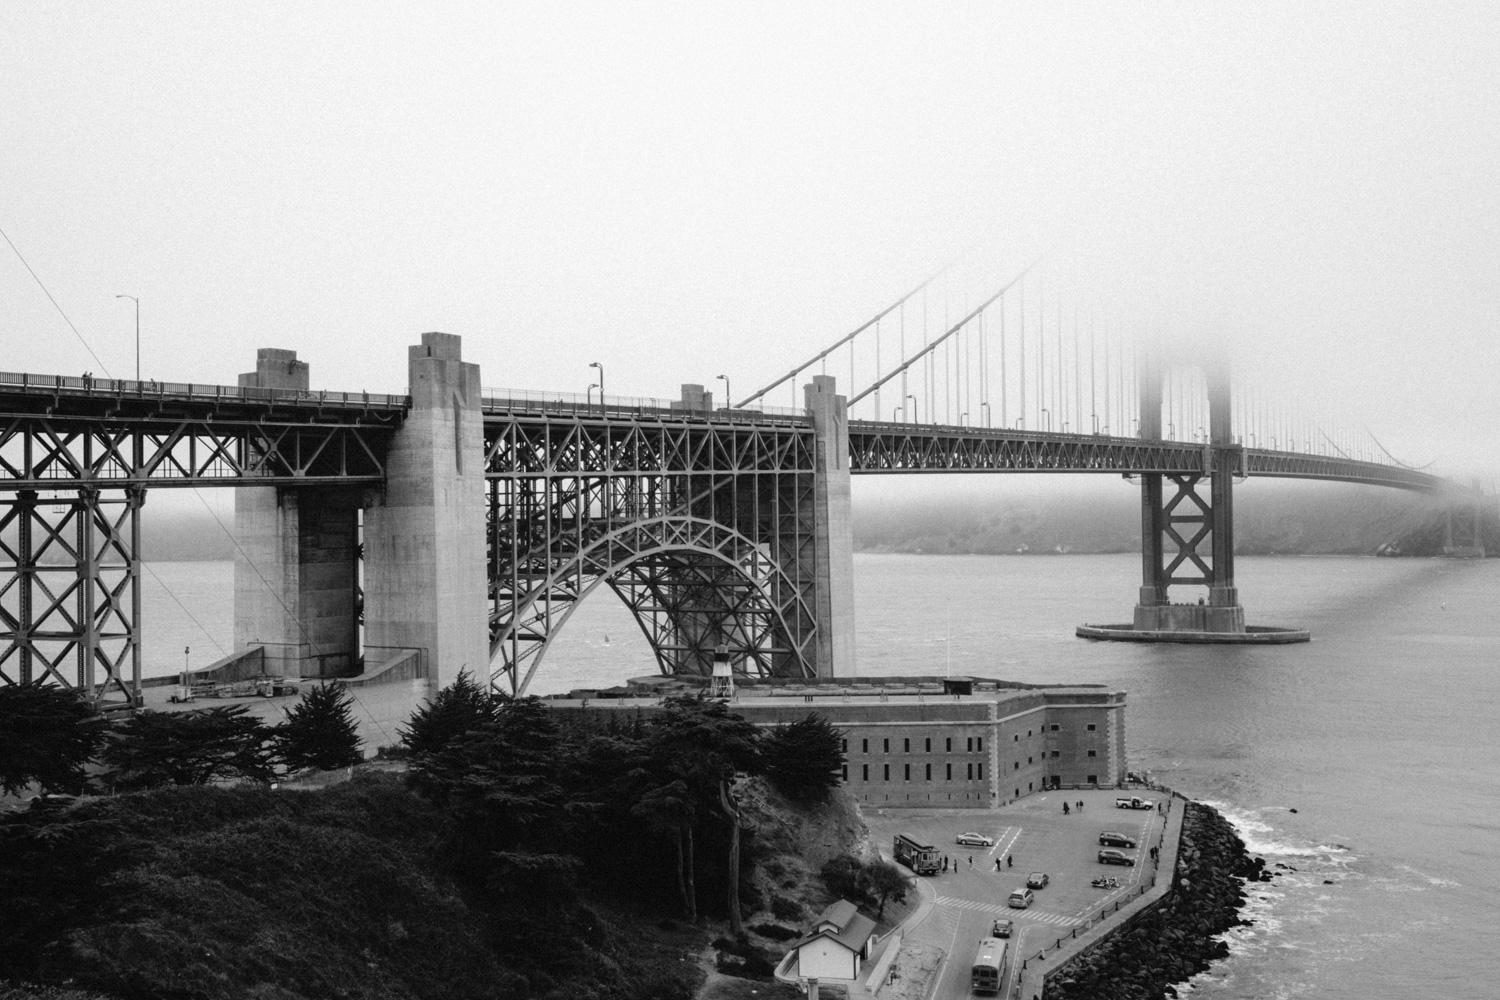 A monochrome view of the Golden Gate partially covered by the already characteristic fog